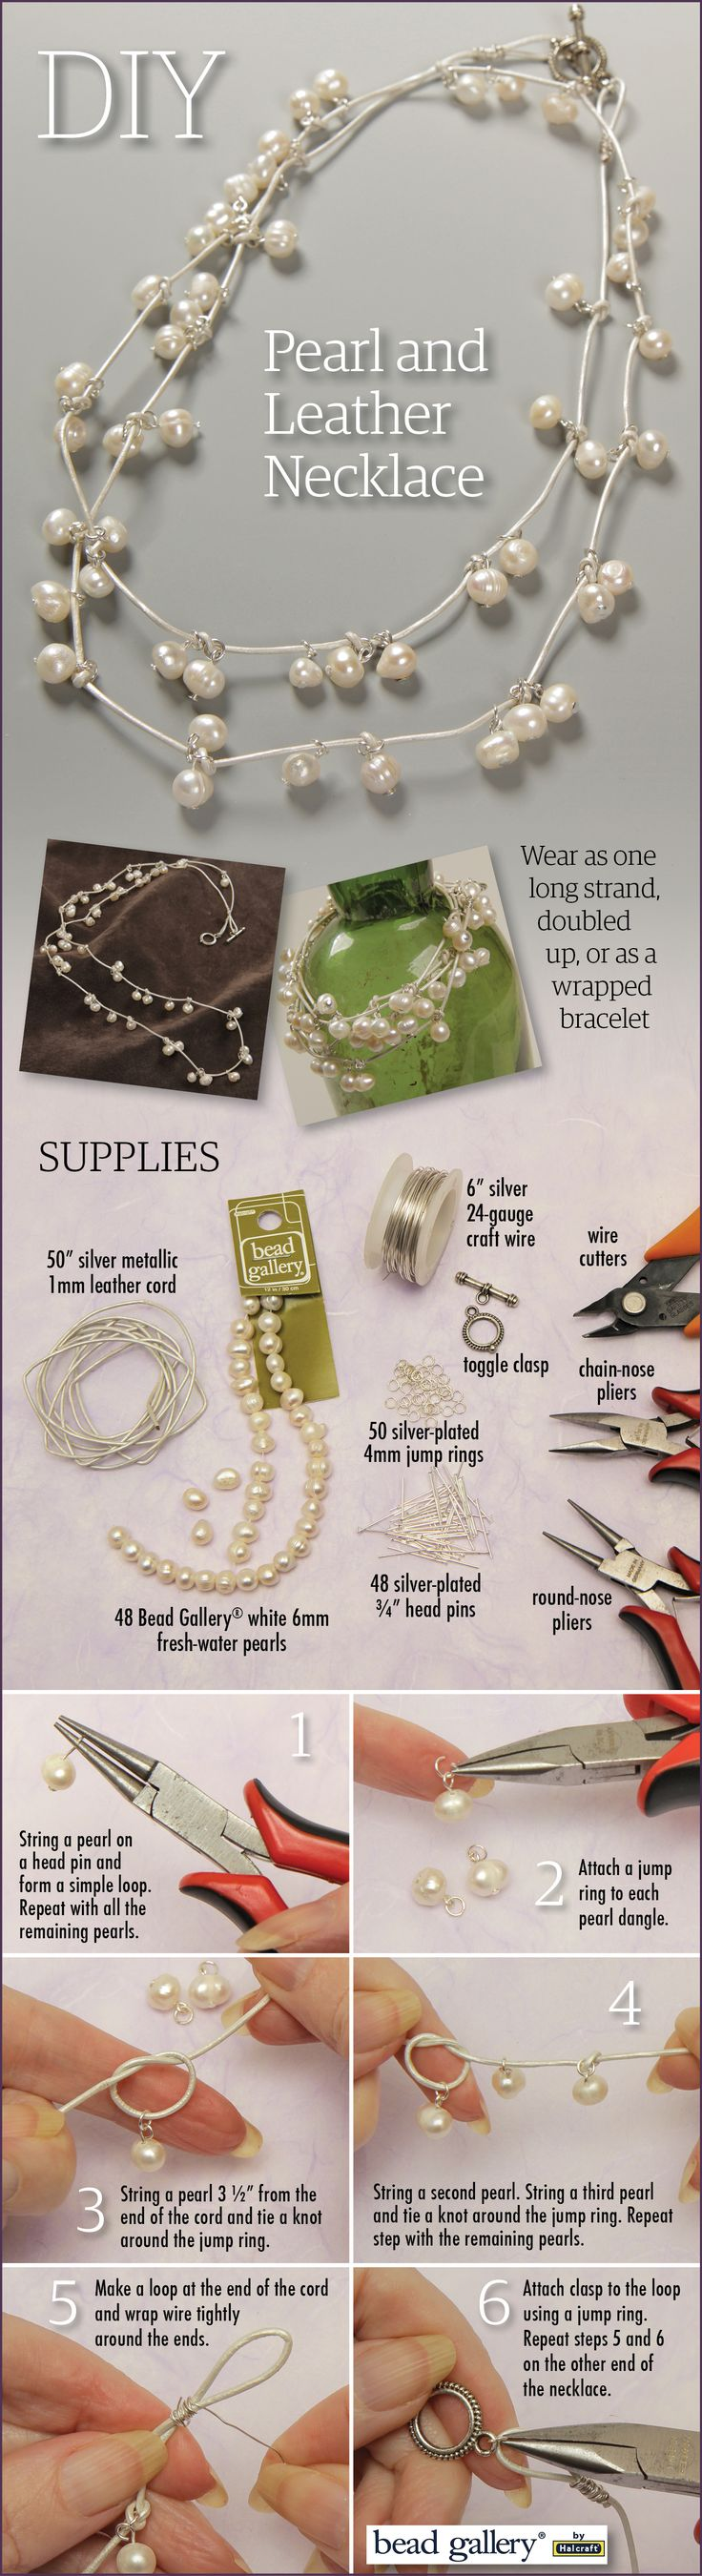 DIY Pearl and Leather Necklace